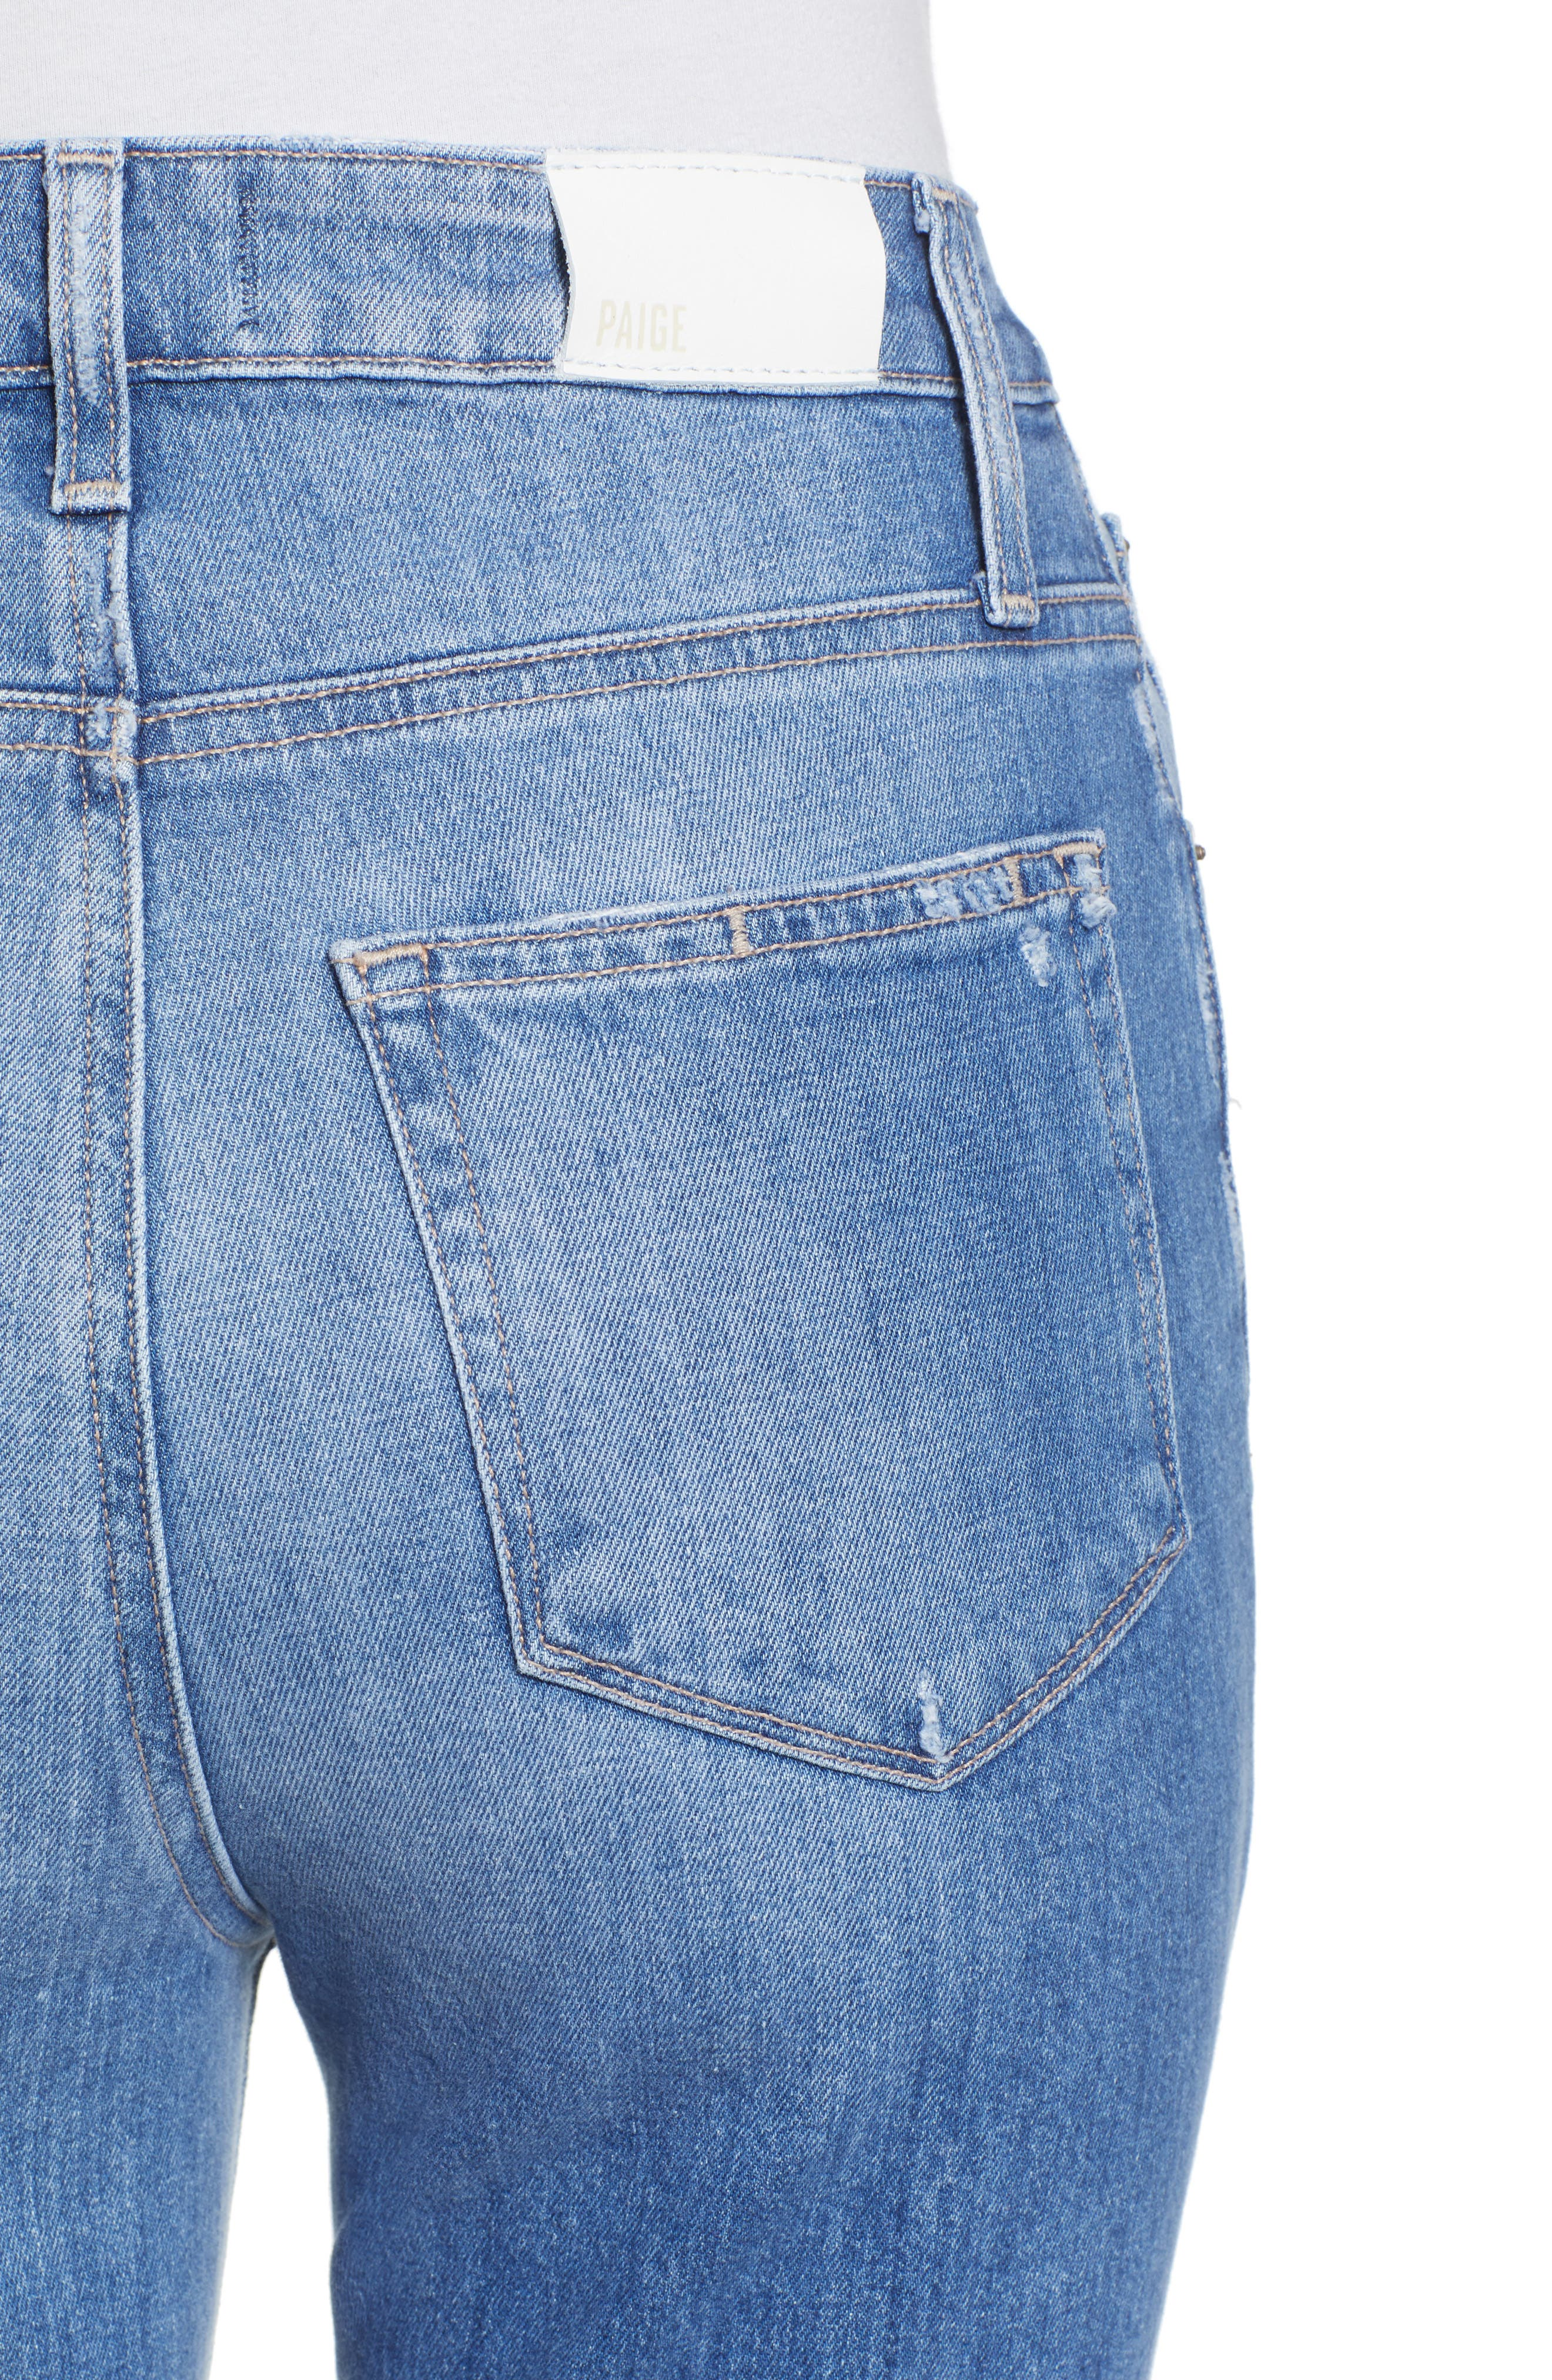 Sarah Ripped High Waist Ankle Straight Leg Jeans,                             Alternate thumbnail 4, color,                             BROOKVIEW DESTRUCTED